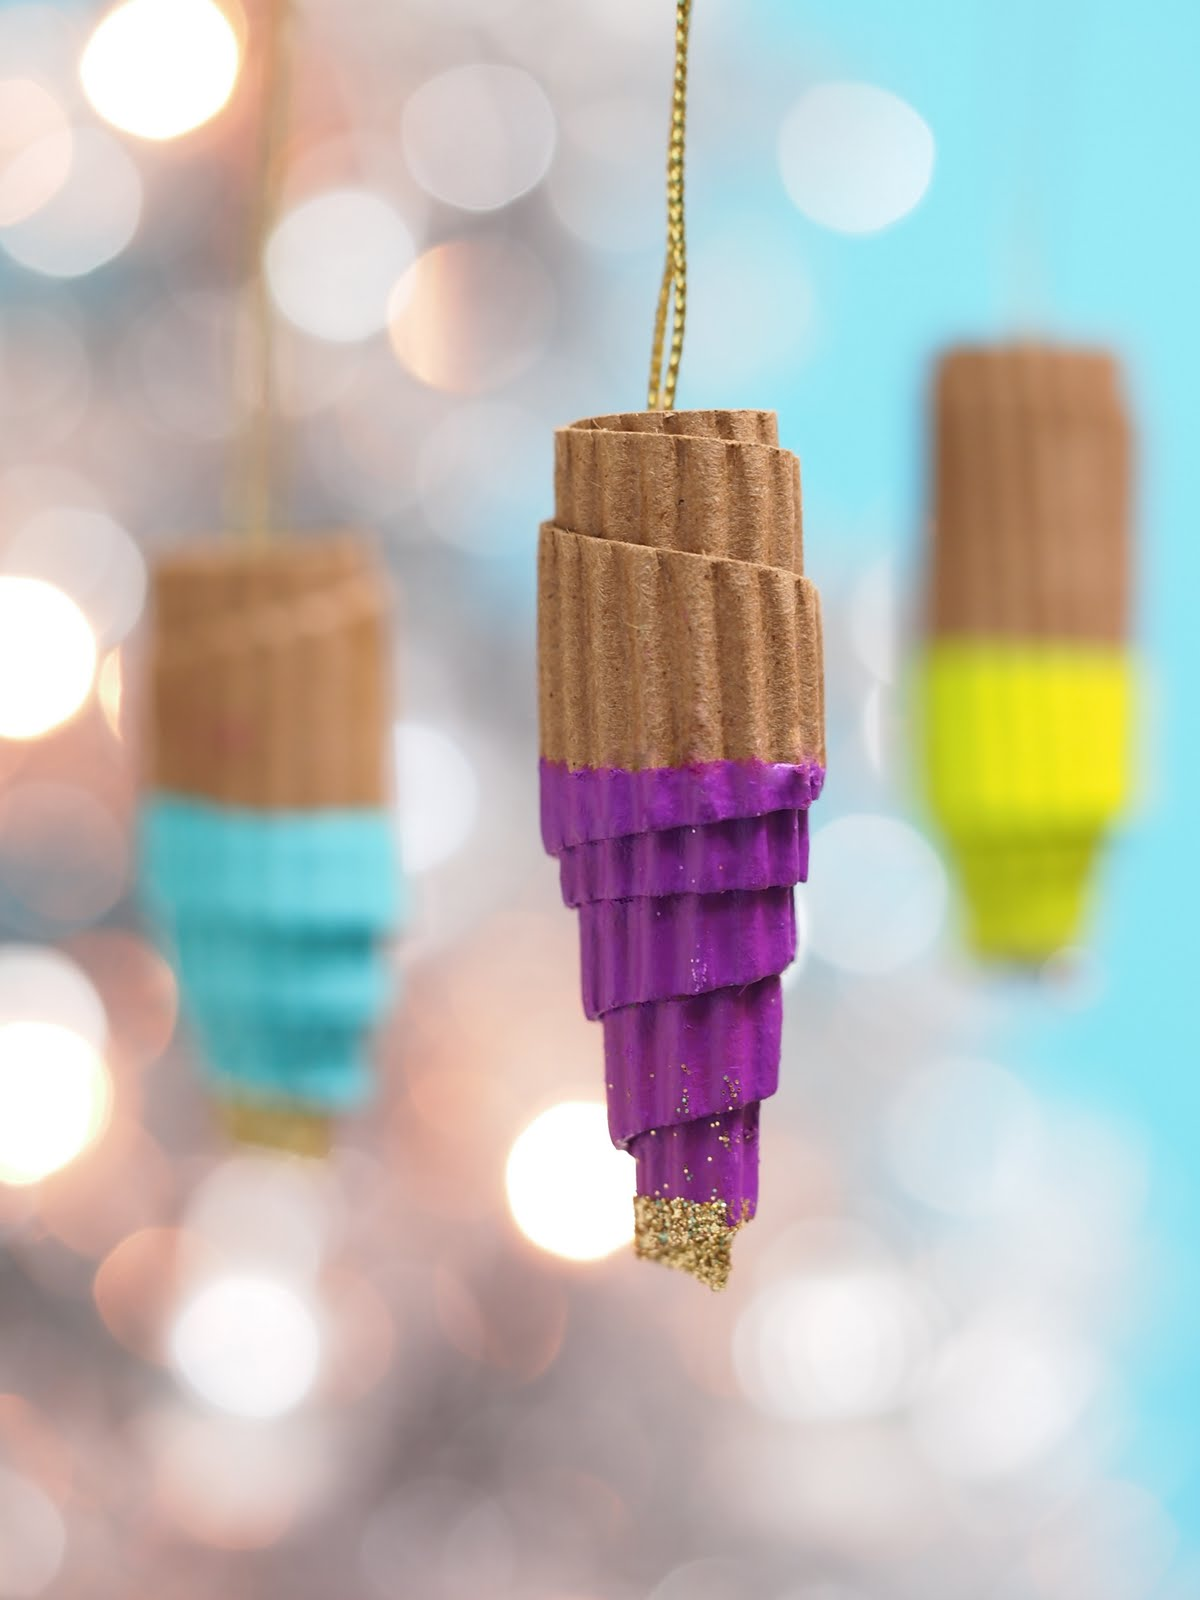 Ice cream ornaments -  These Simple Ornaments Are Made From Recycled Cardboard Coffee Sleeves From Starbucks Or Panera They Have A Lovely Texture Too